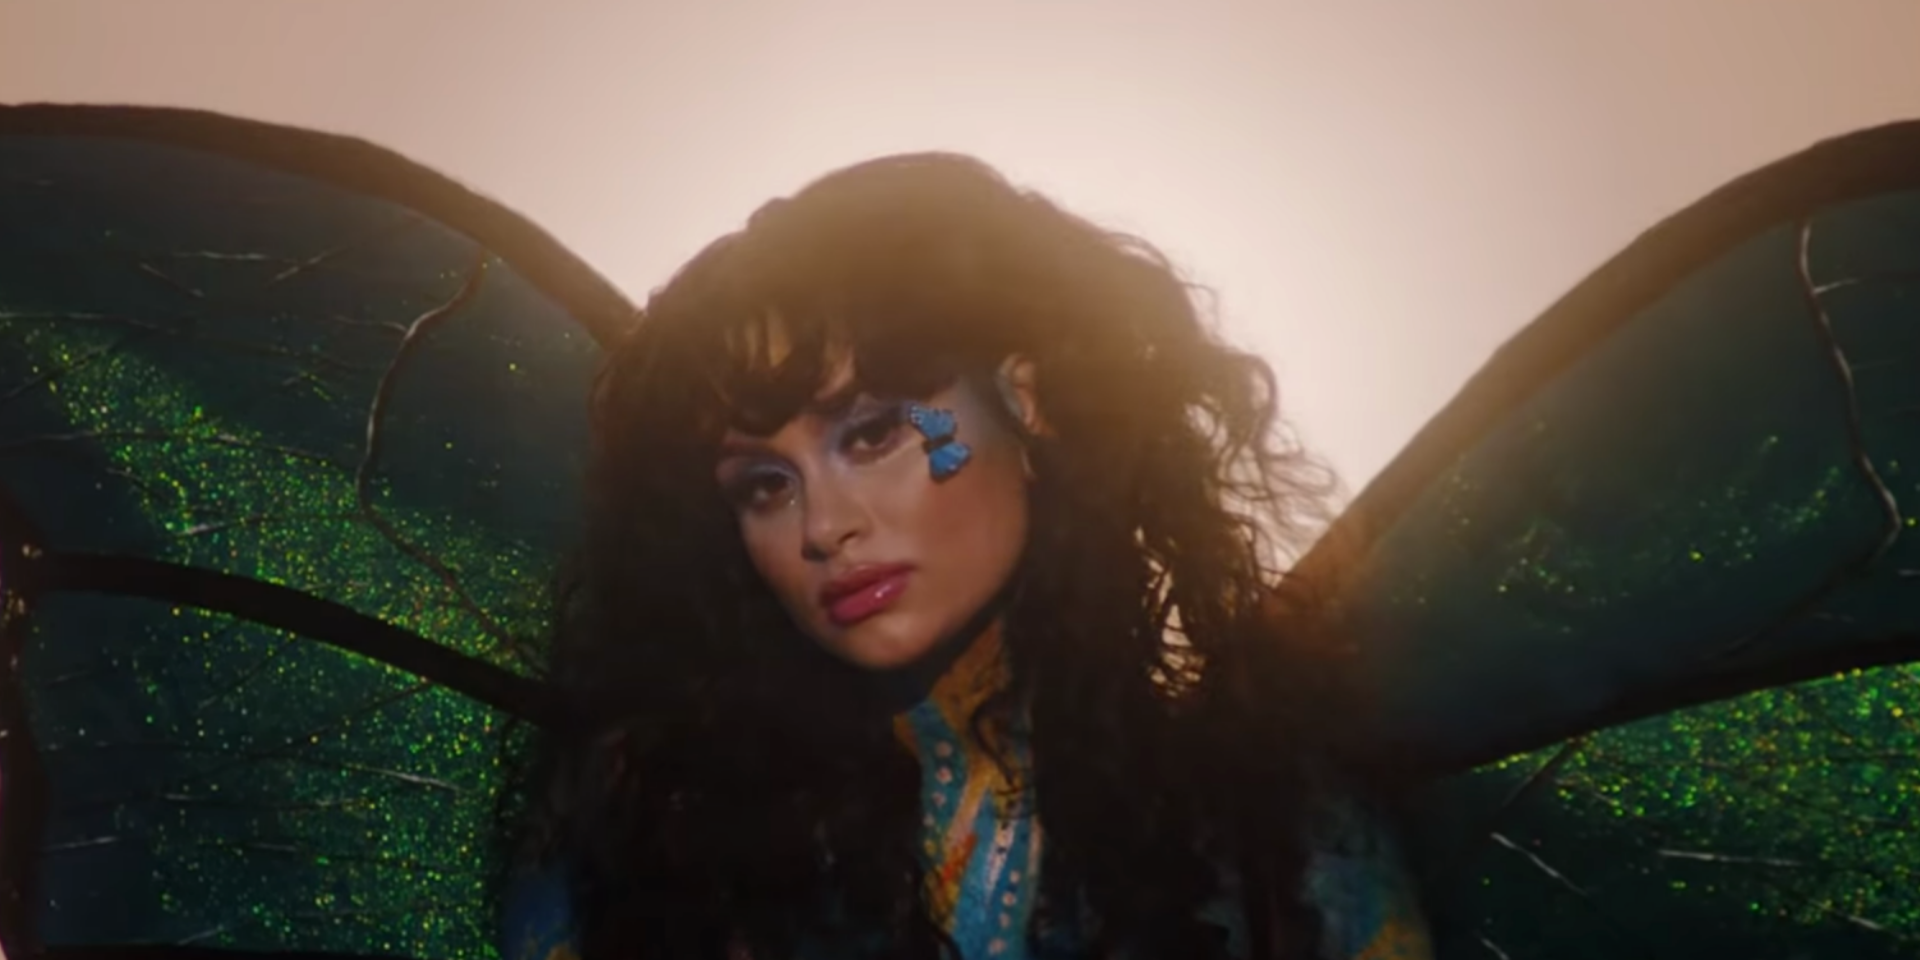 Kehlani releases gorgeous music video for 'Butterfly', featuring teachers and students from her middle school – watch